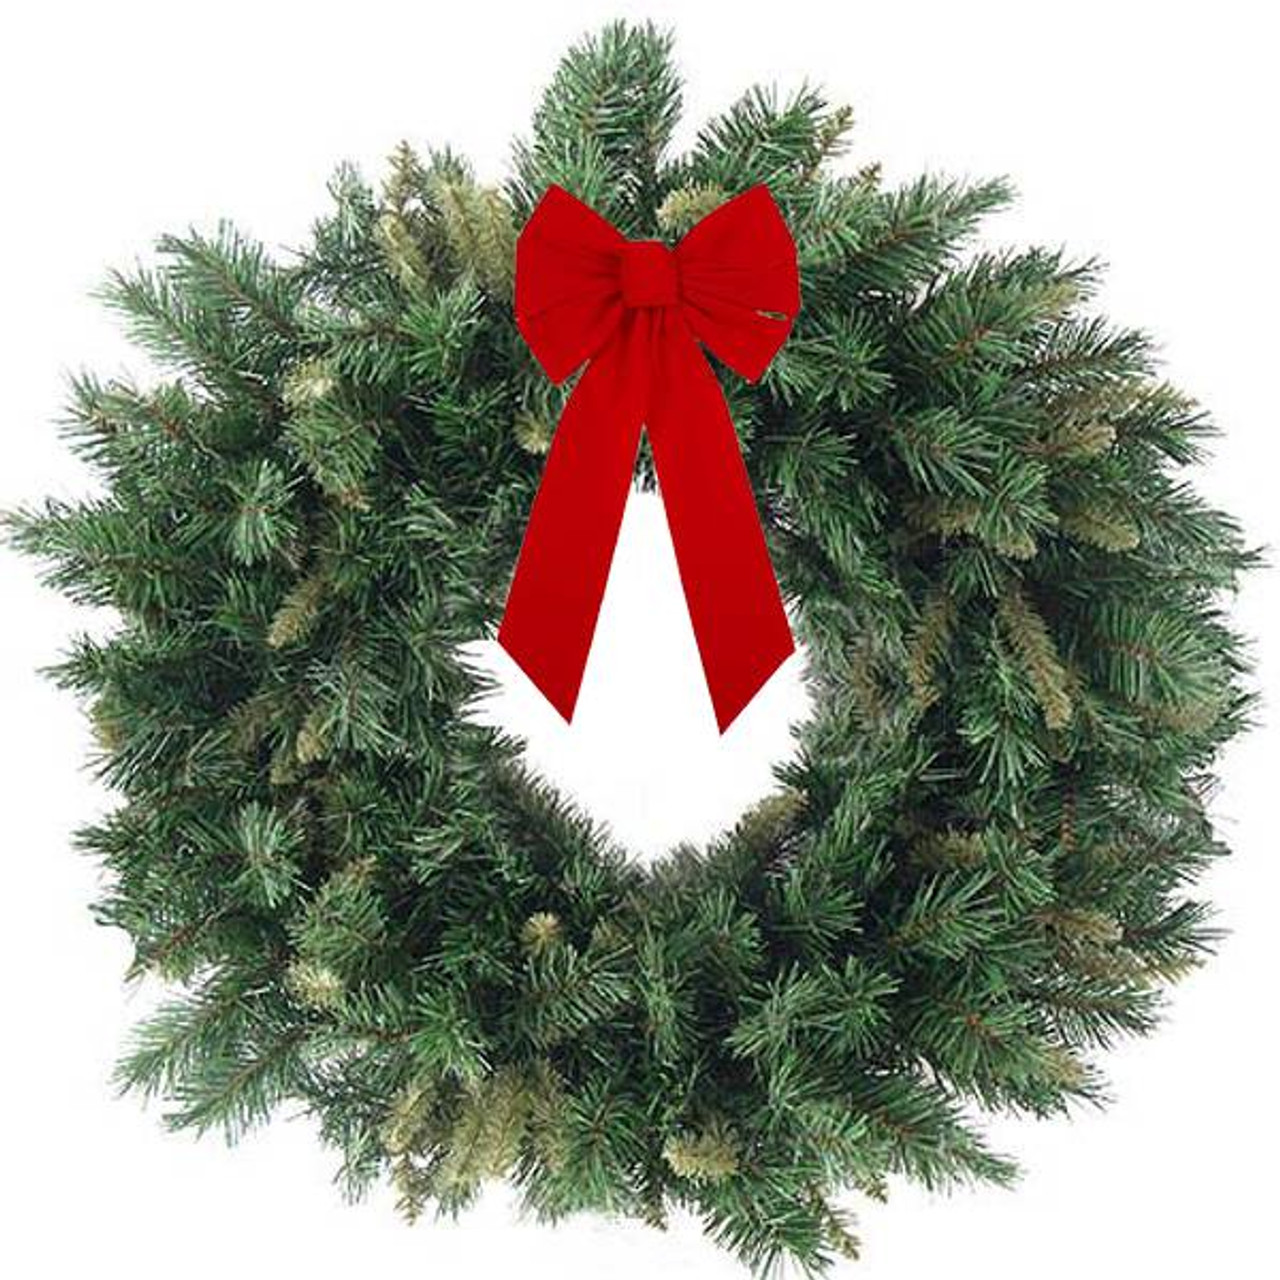 Large Red Bow Christmas Decorations  from cdn11.bigcommerce.com